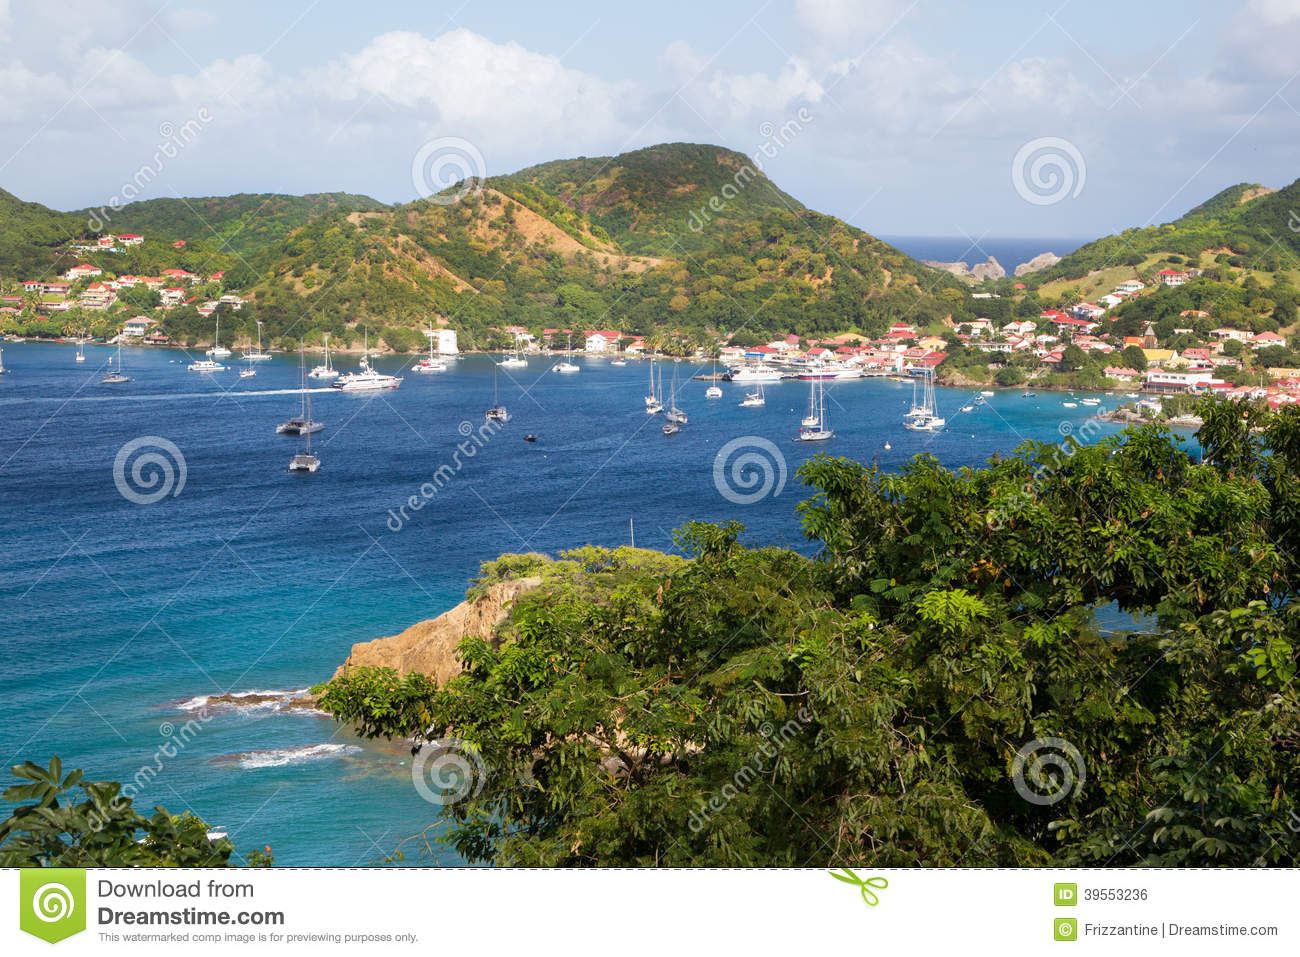 Explore The Beauty Of Caribbean: View At The Caribbean Island Martinique. Stock Photo